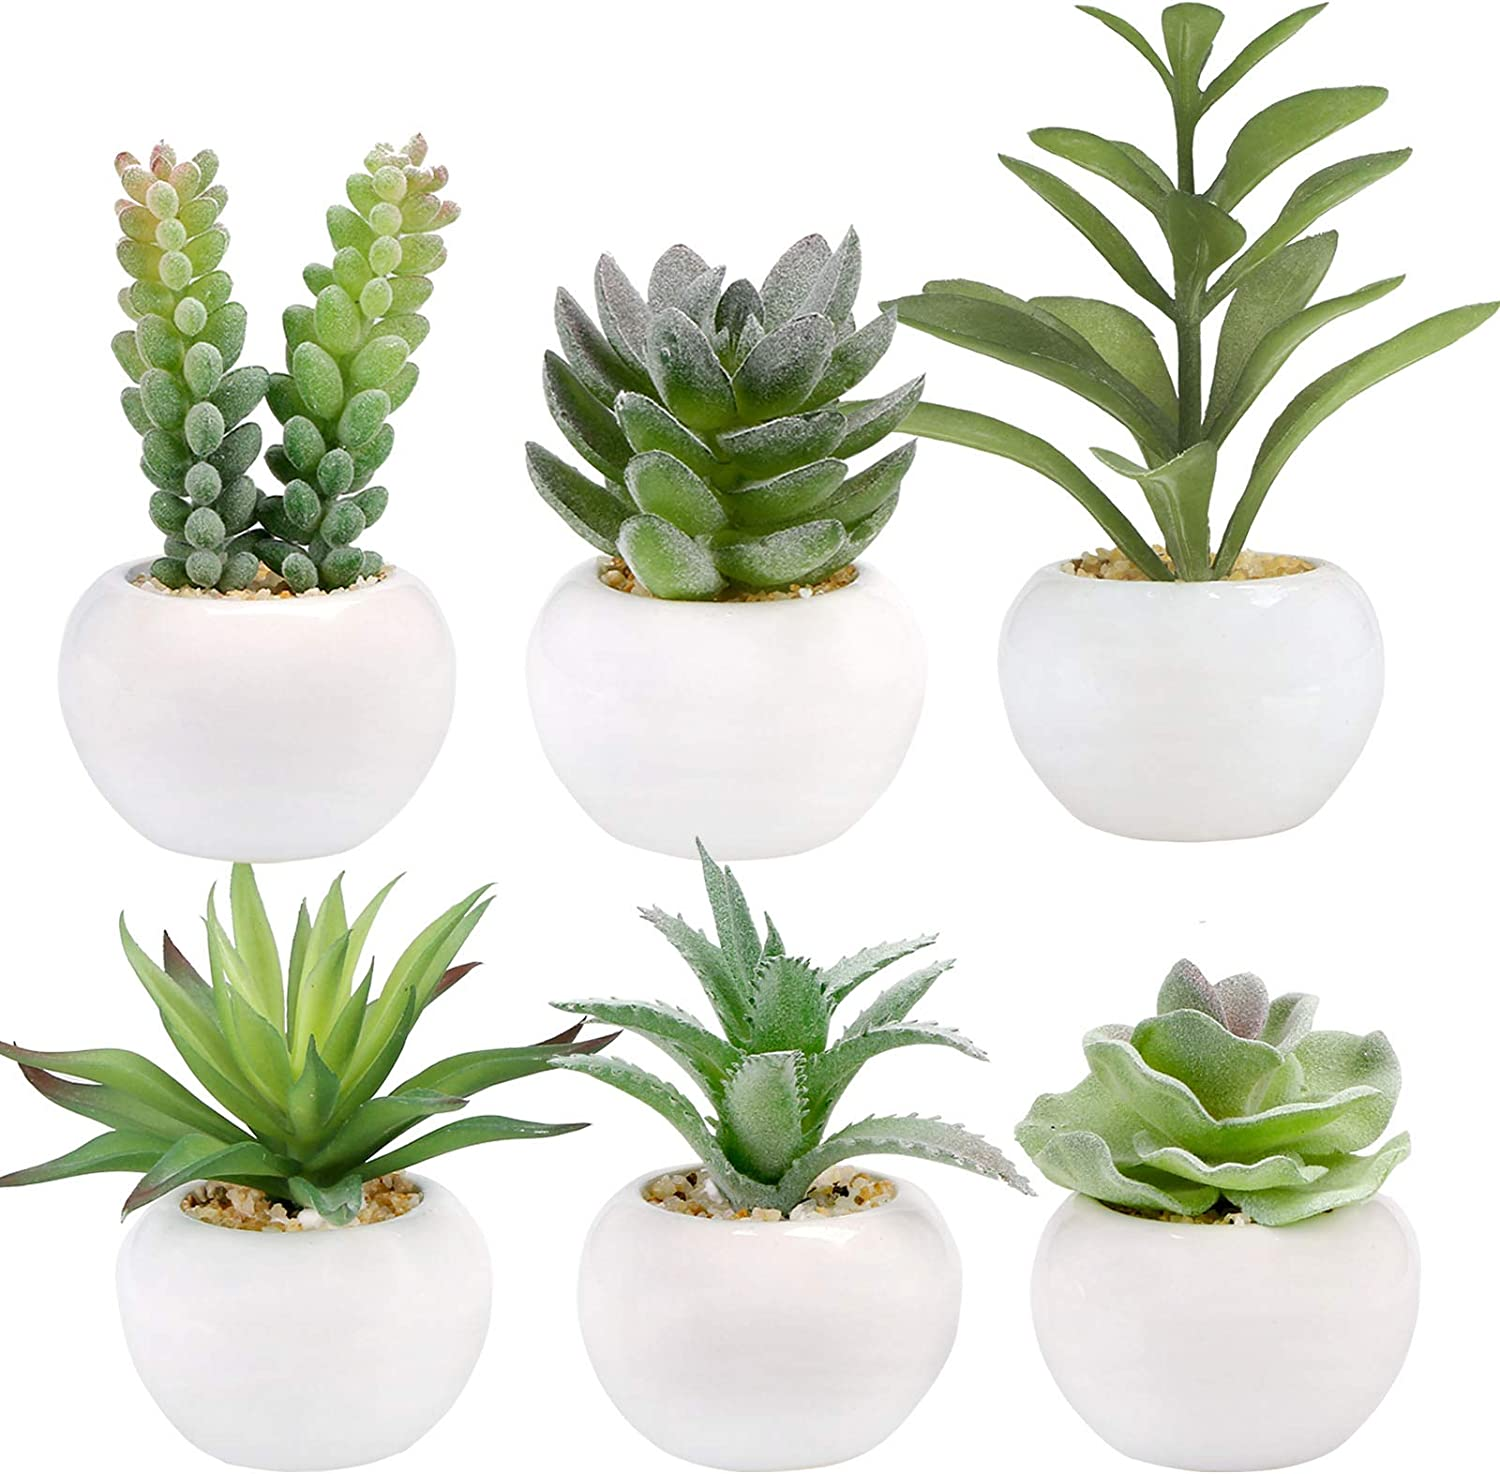 Greentime Set of 6 Succulents Plants Artificial in Mini White Ceramic Pots,Small Fake Succulents Plants,Faux Indoor Succulent Plants for Windowsills,Bedroom,Desk,Bathroom,Office,Home Decoration